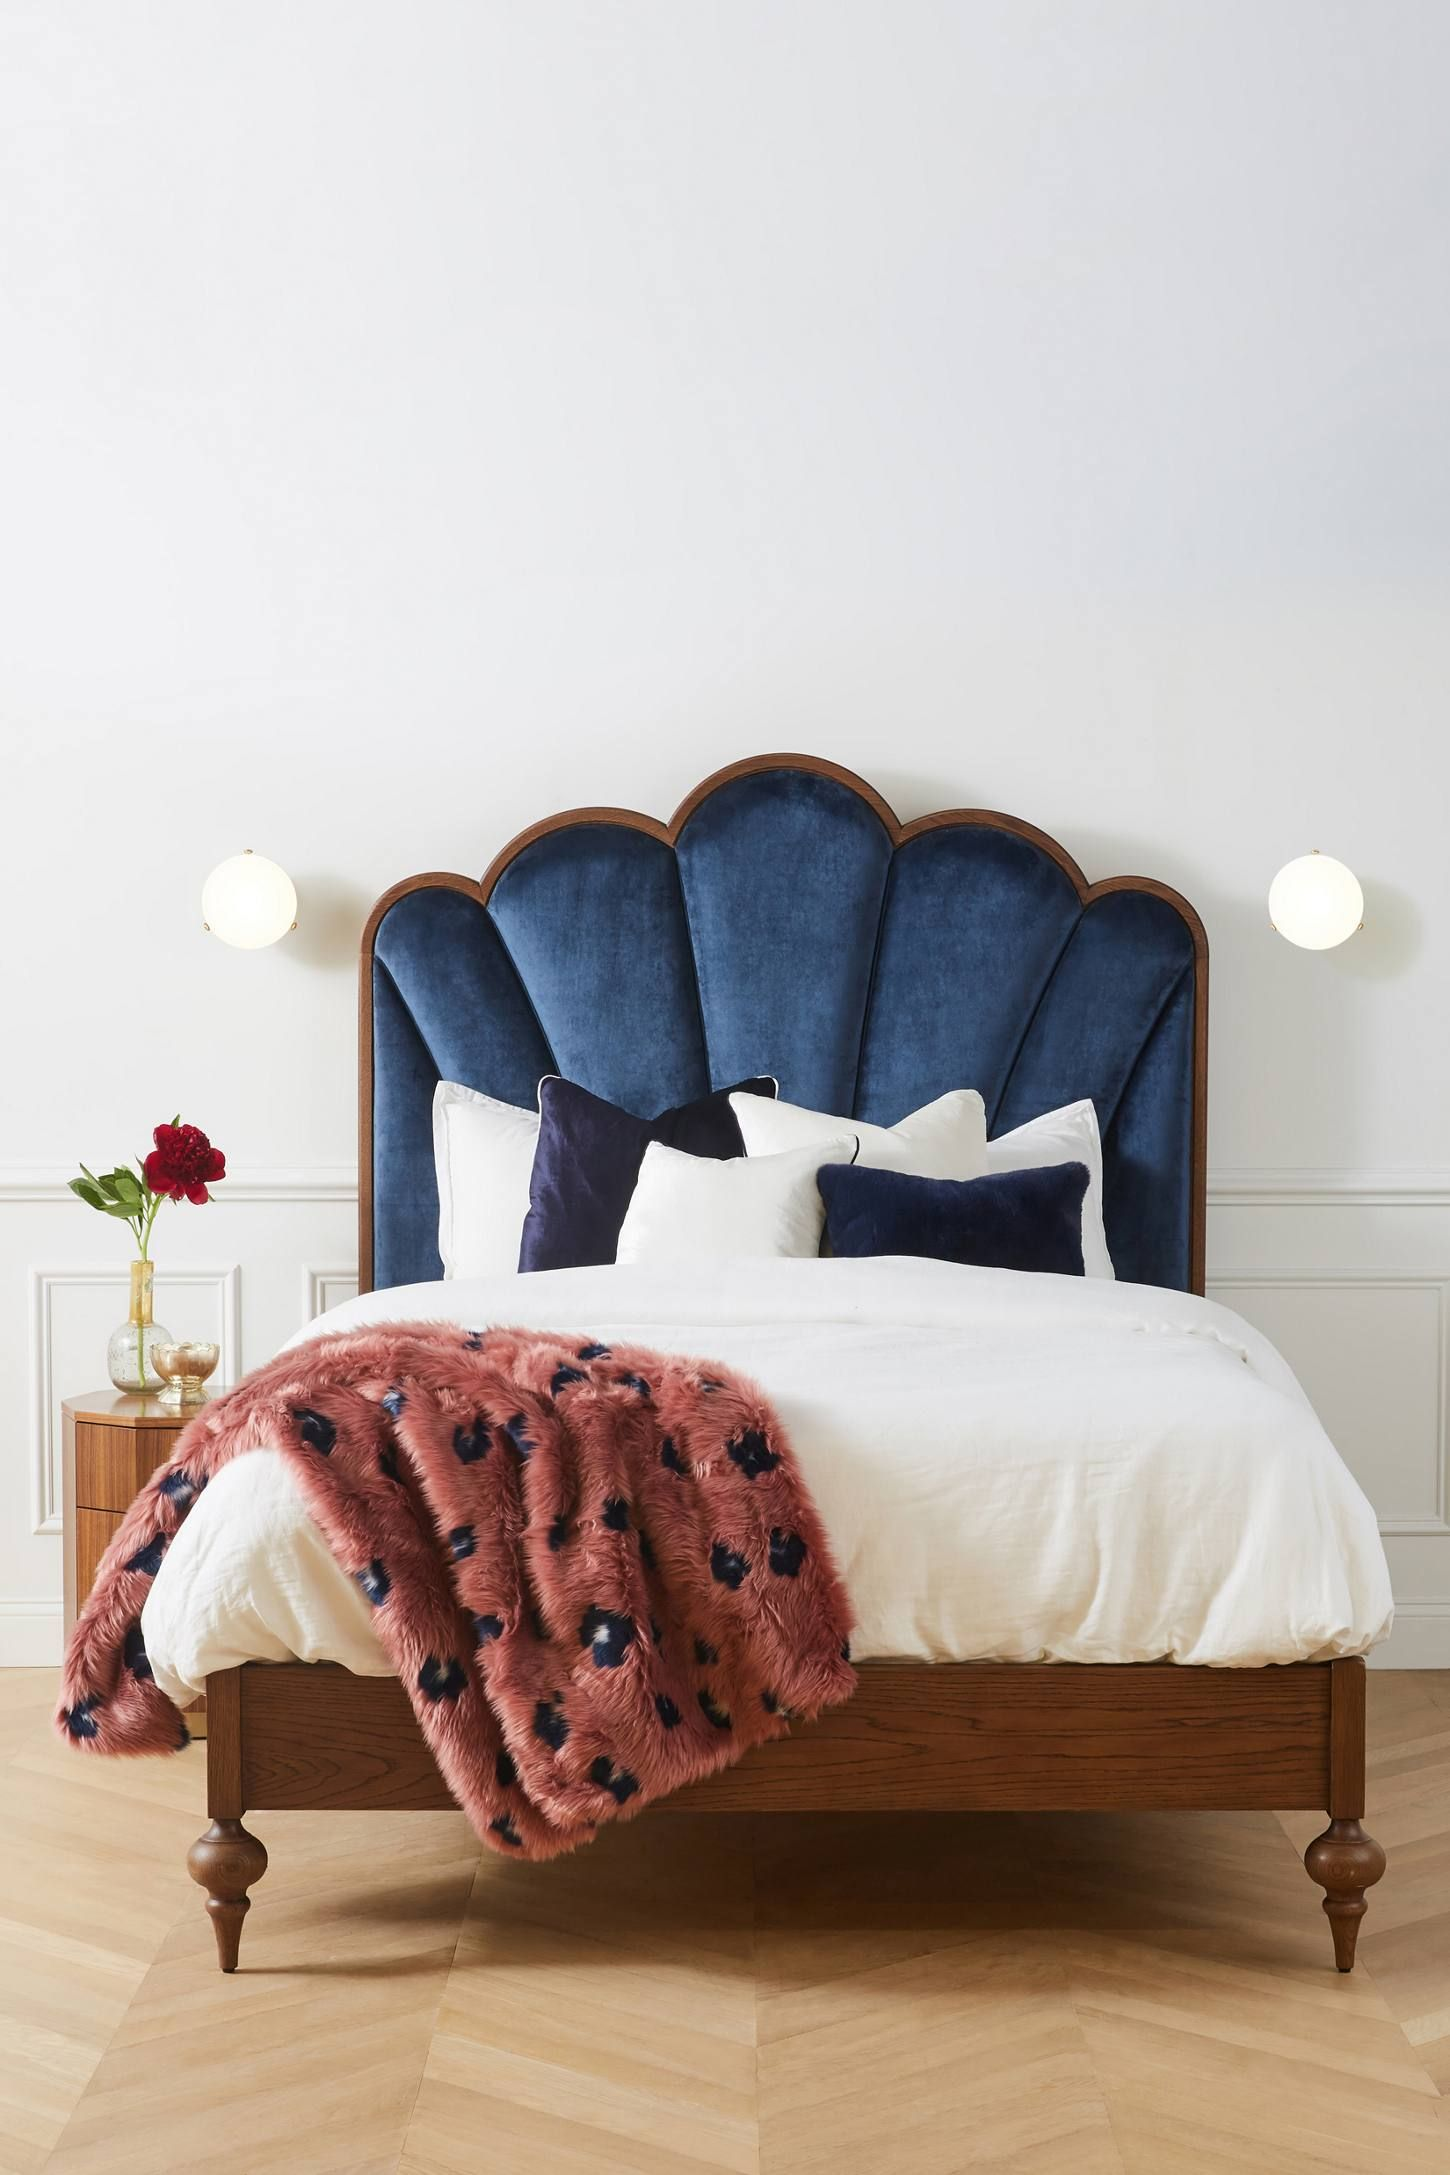 Soho Home X Anthropologie Sofia Bed With Images Bed Design